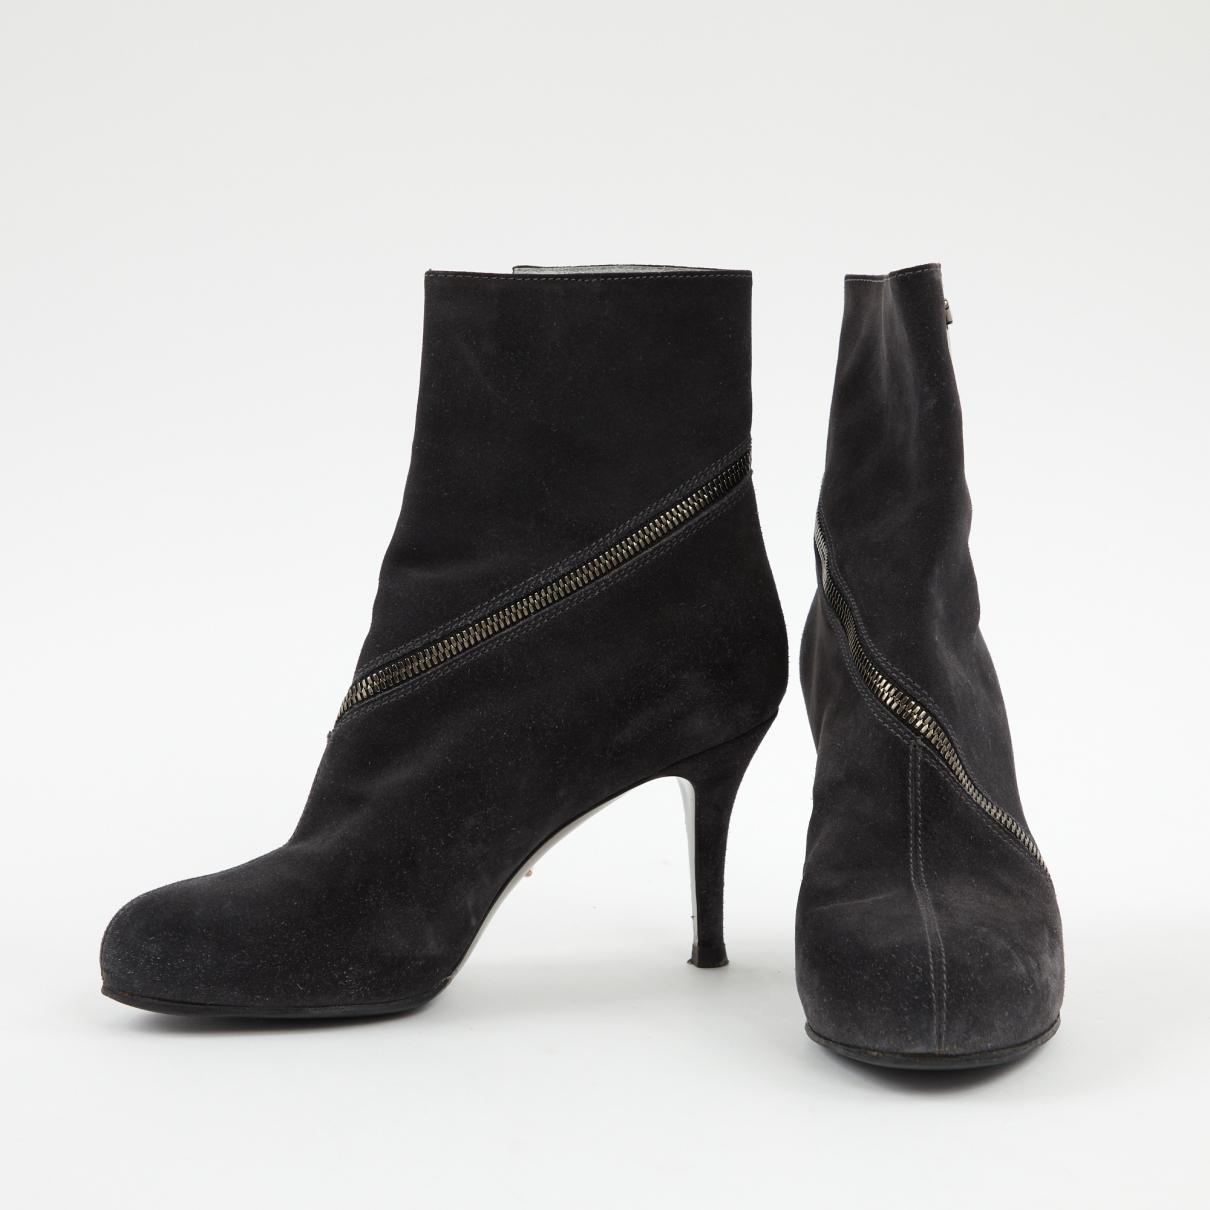 3fc3c3d2e Lyst - Sergio Rossi Anthracite Suede Boots in Black